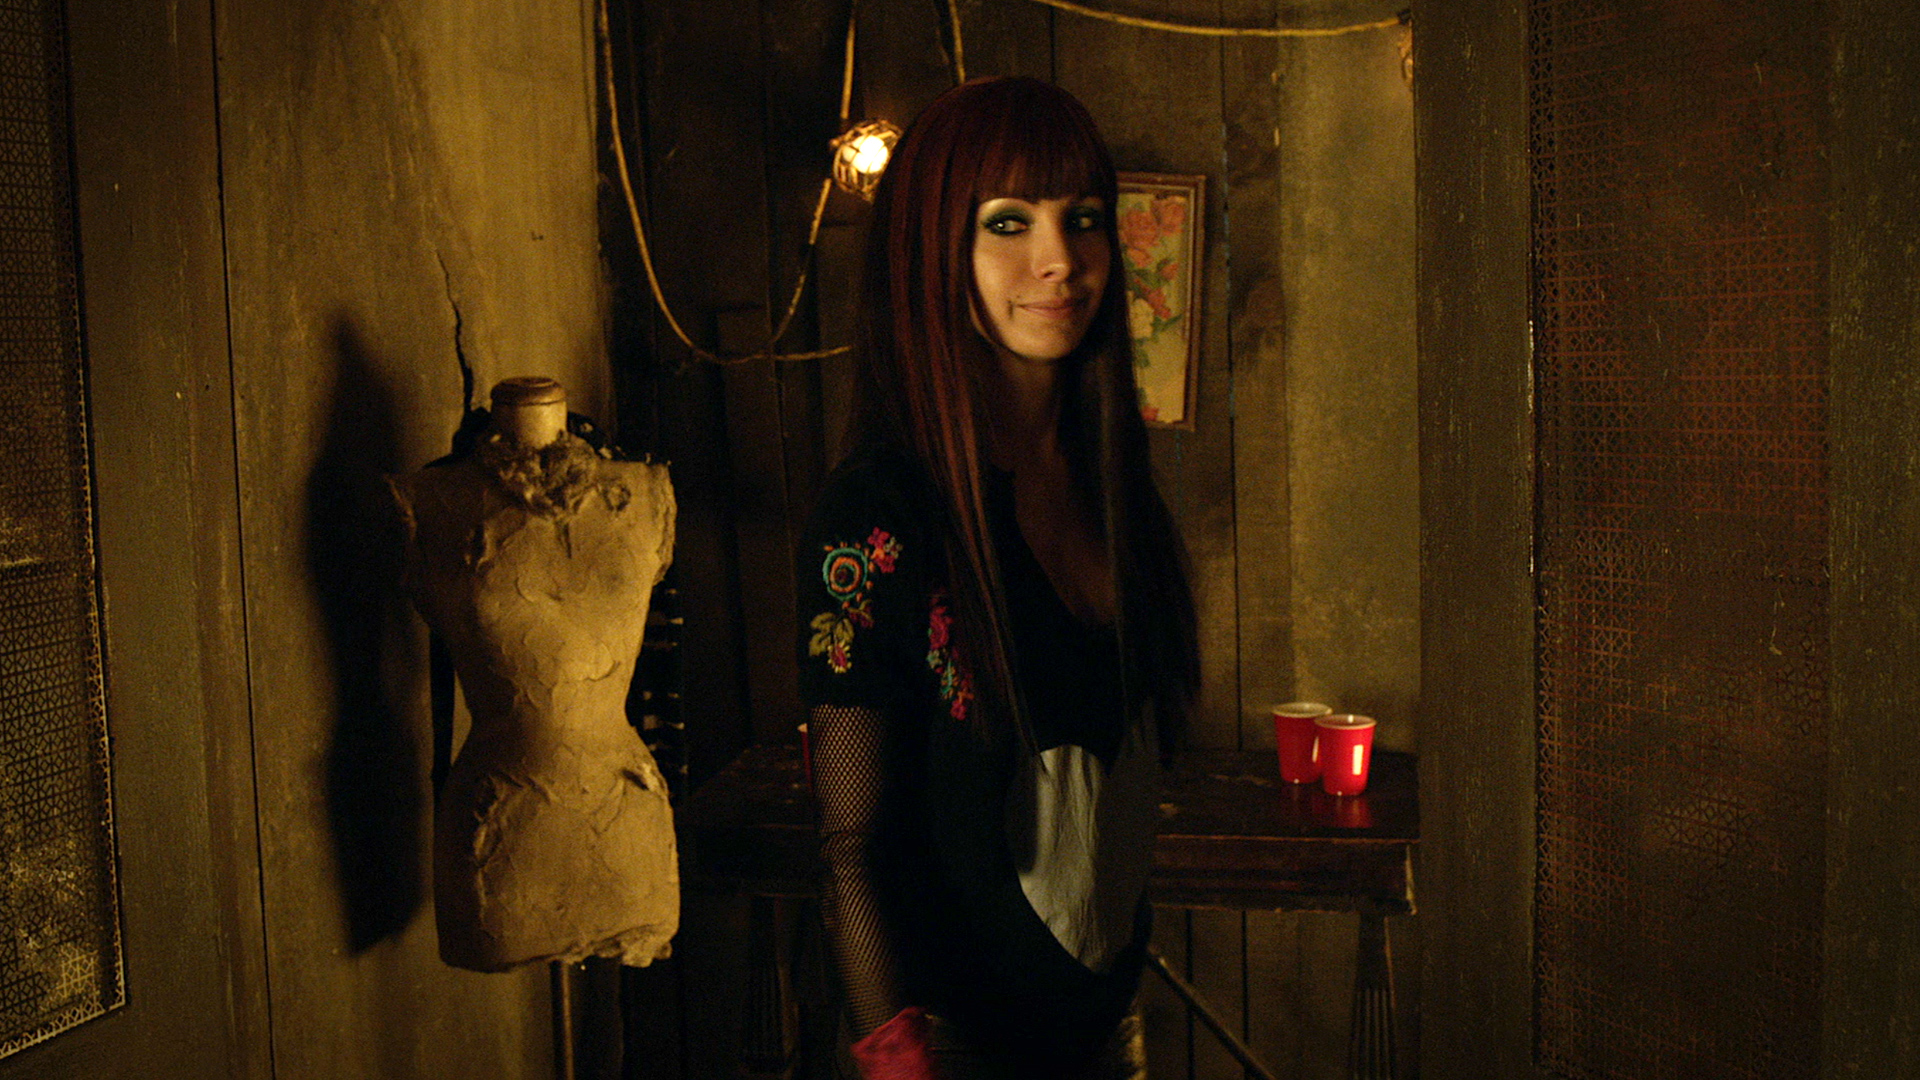 kenzi and dyson relationship quiz